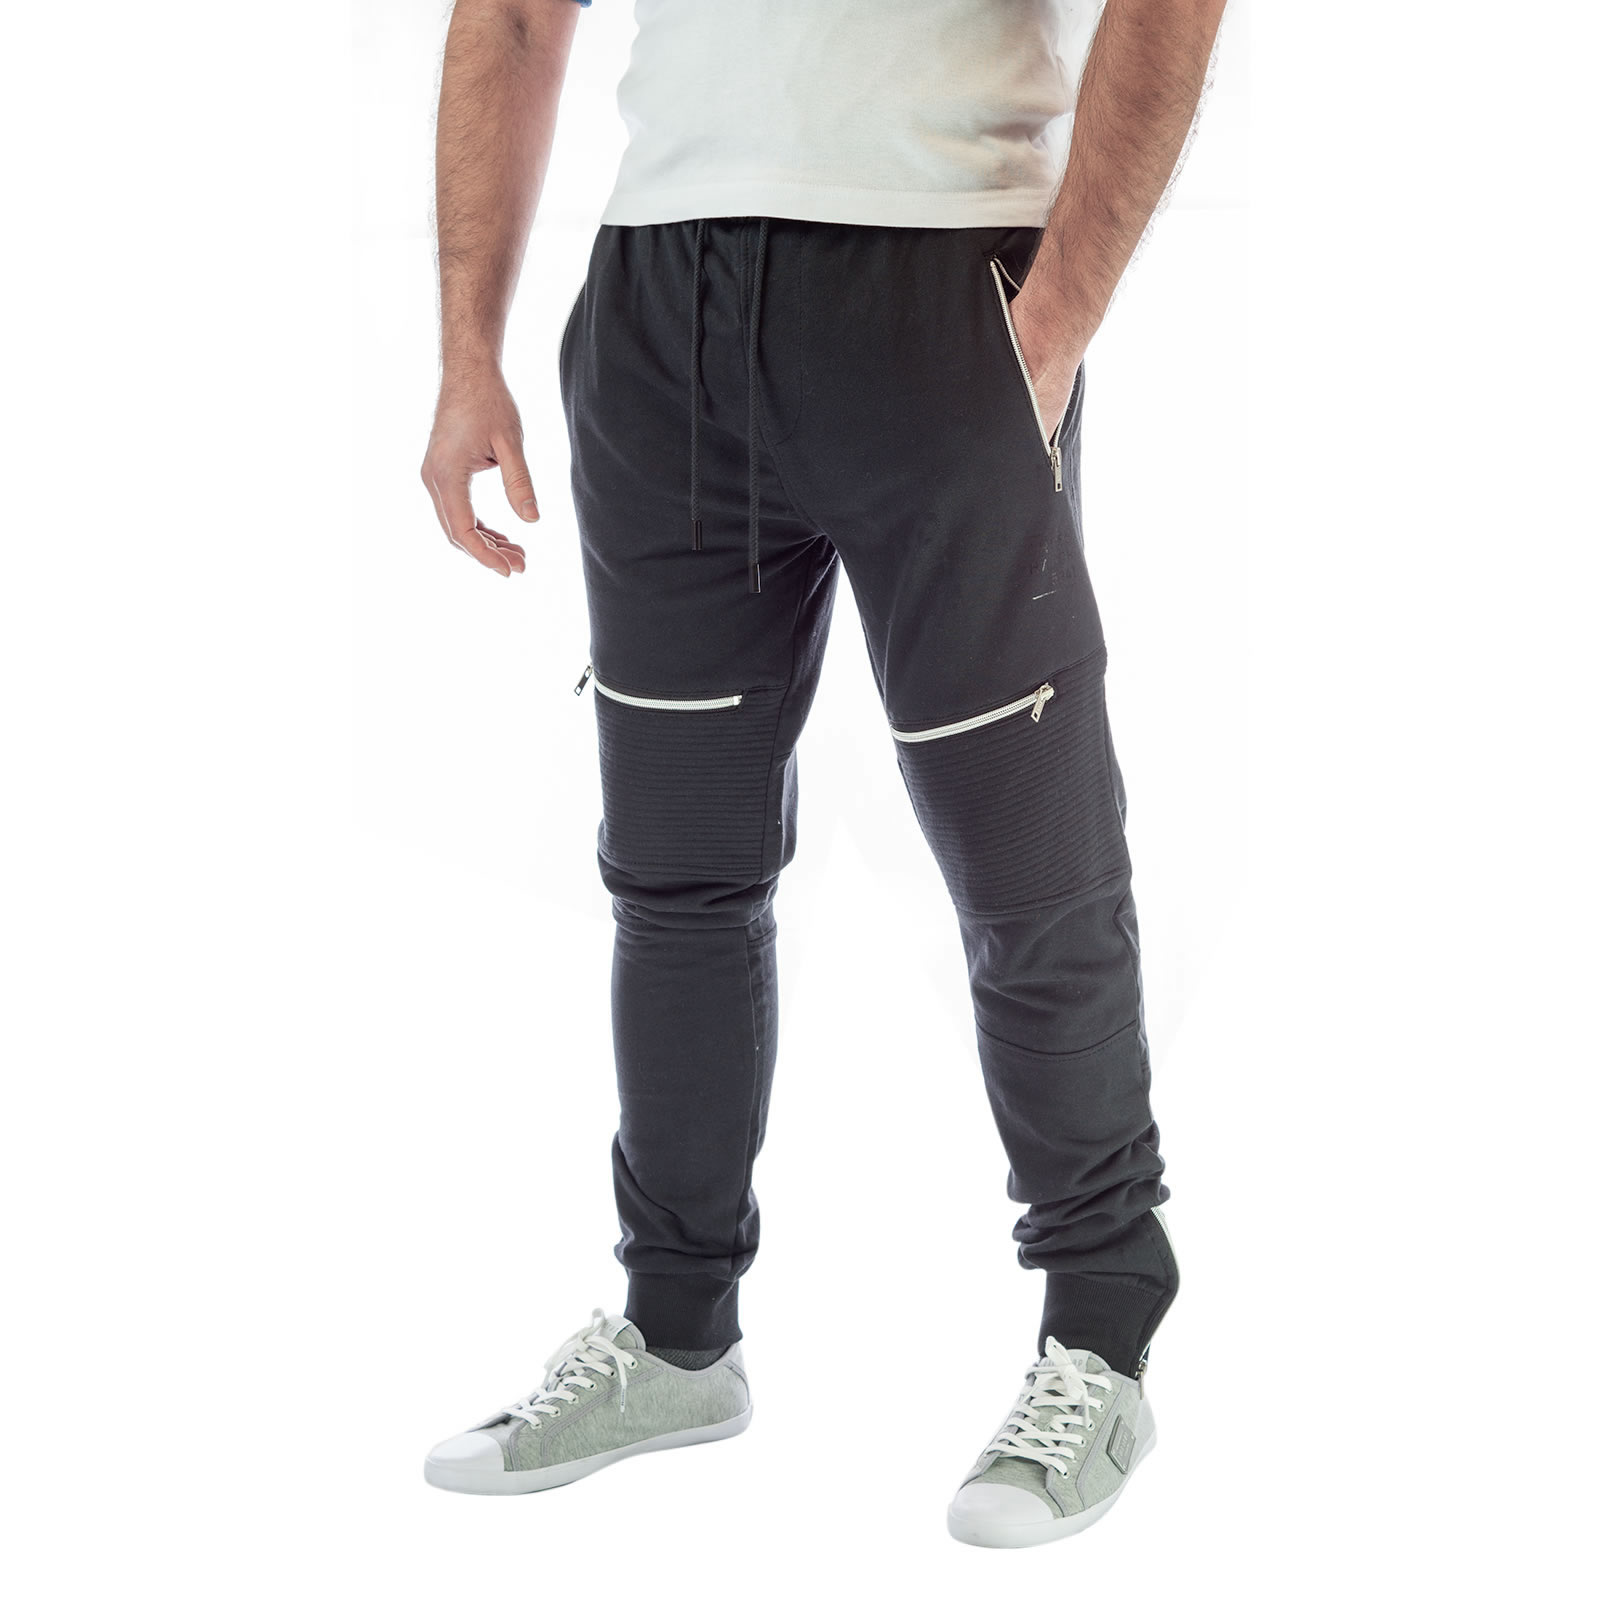 Buy low price, high quality harem jogging bottoms with worldwide shipping on gothicphotos.ga